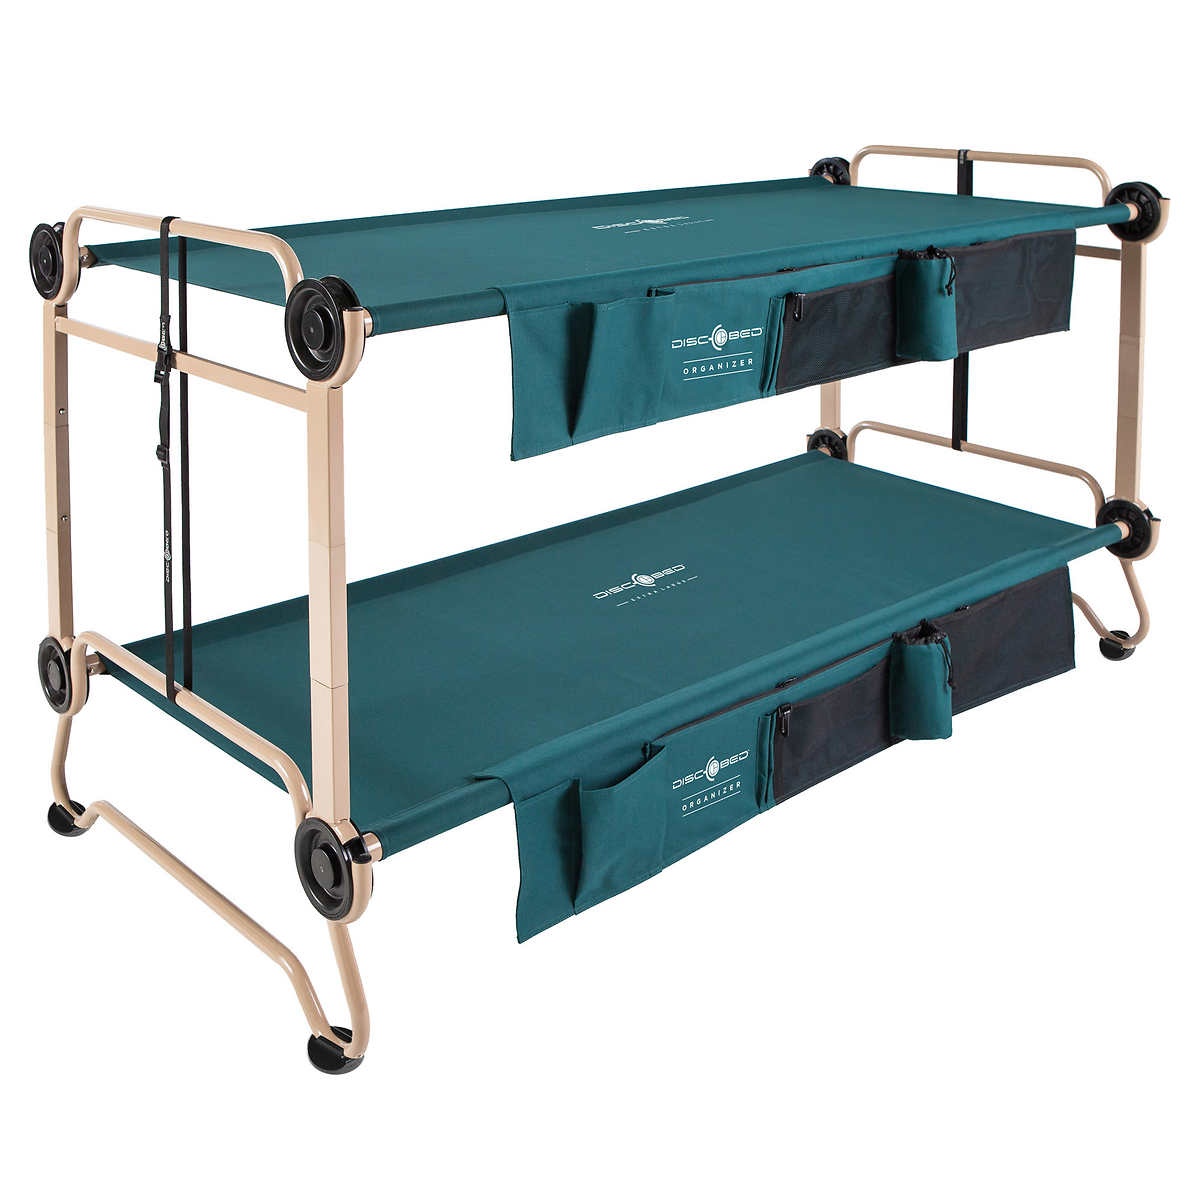 Disc-O-Bed Queen Size Camping Cot.